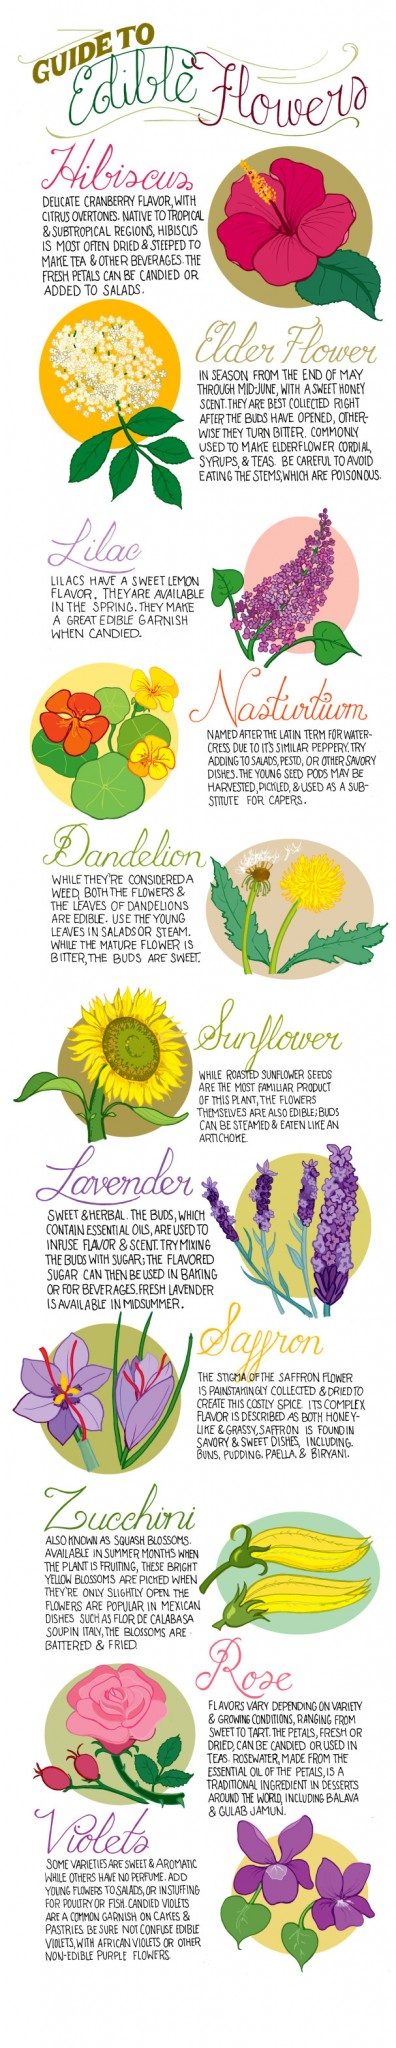 Edible flowers infographic